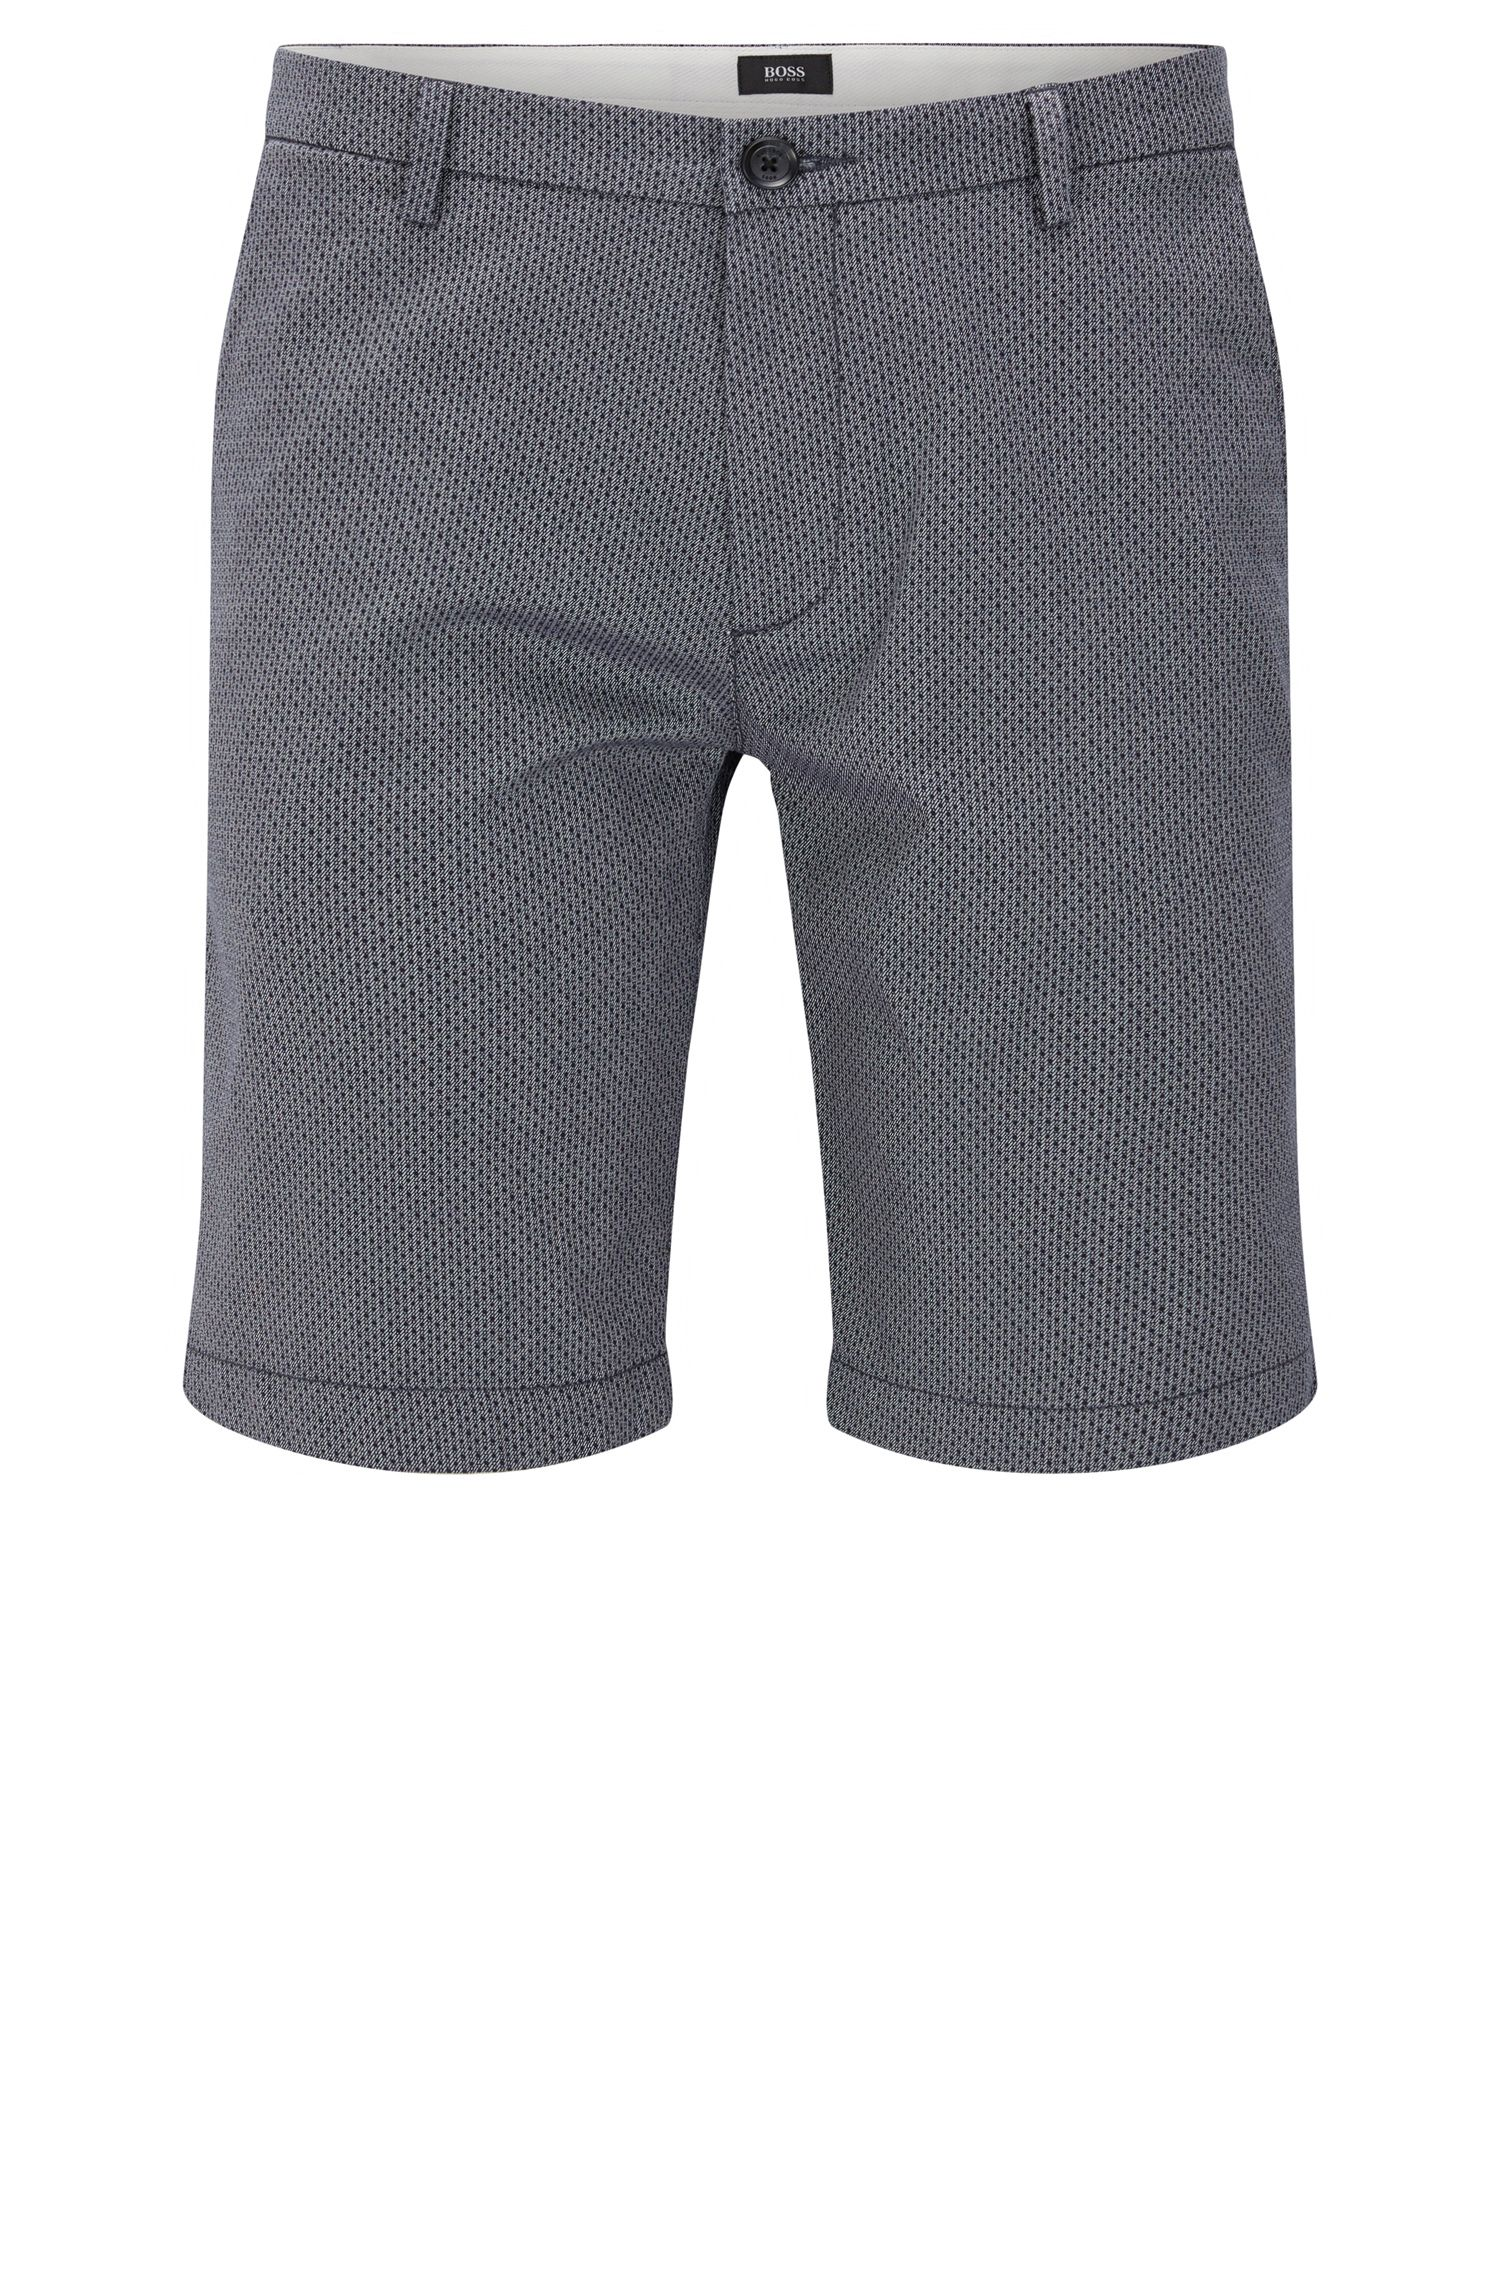 'Rice Short D' | Slim Fit, Stretch Cotton Printed Shorts